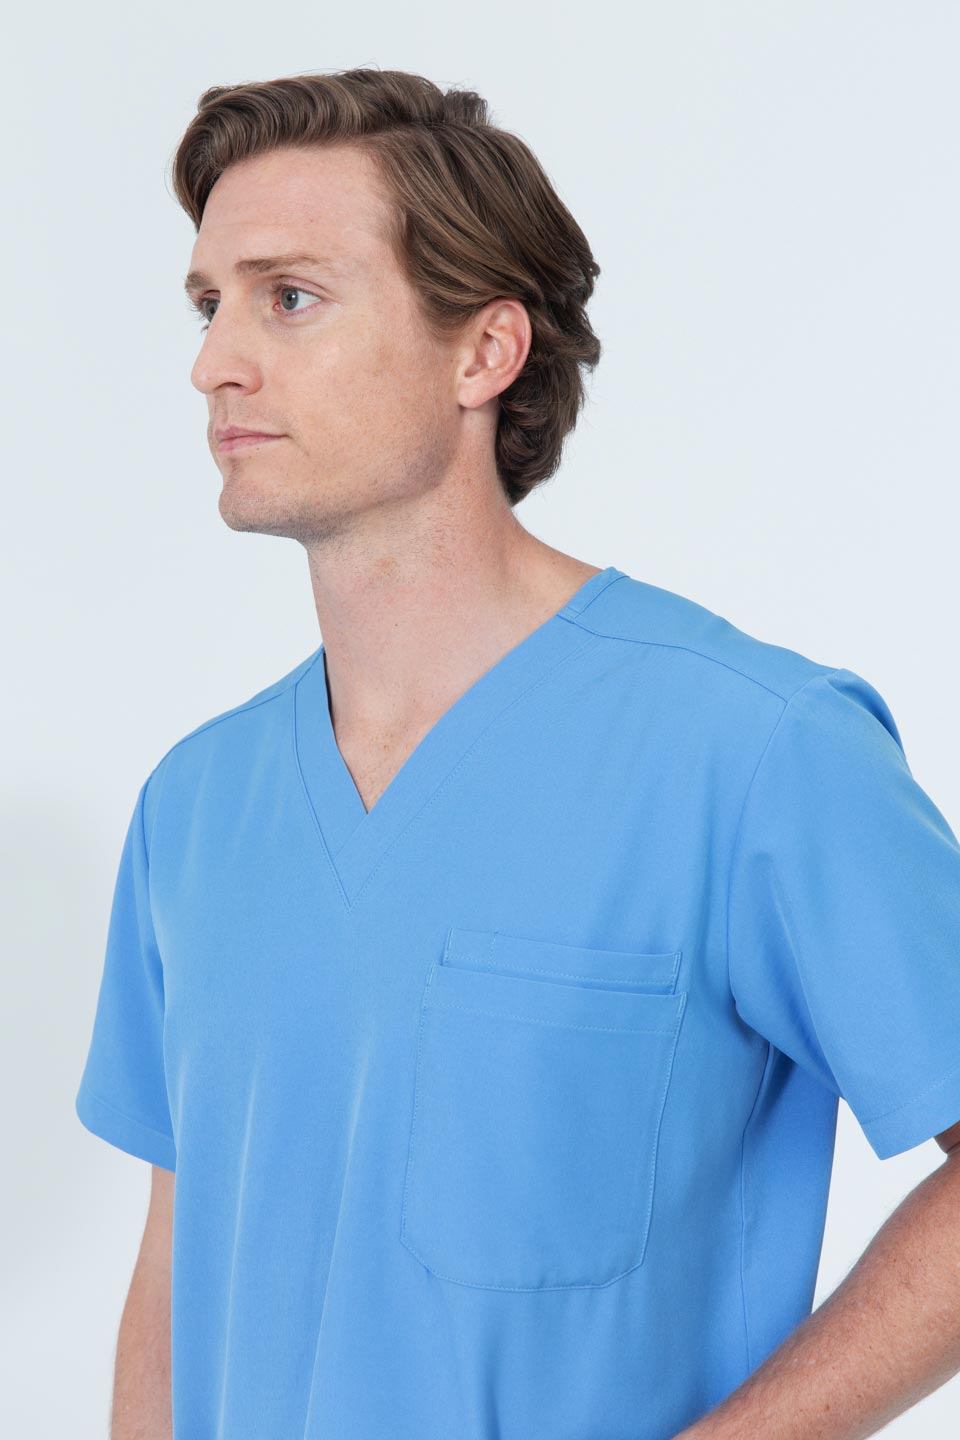 Kalea - Mens Rhapsody Scrub Top - Light Blue